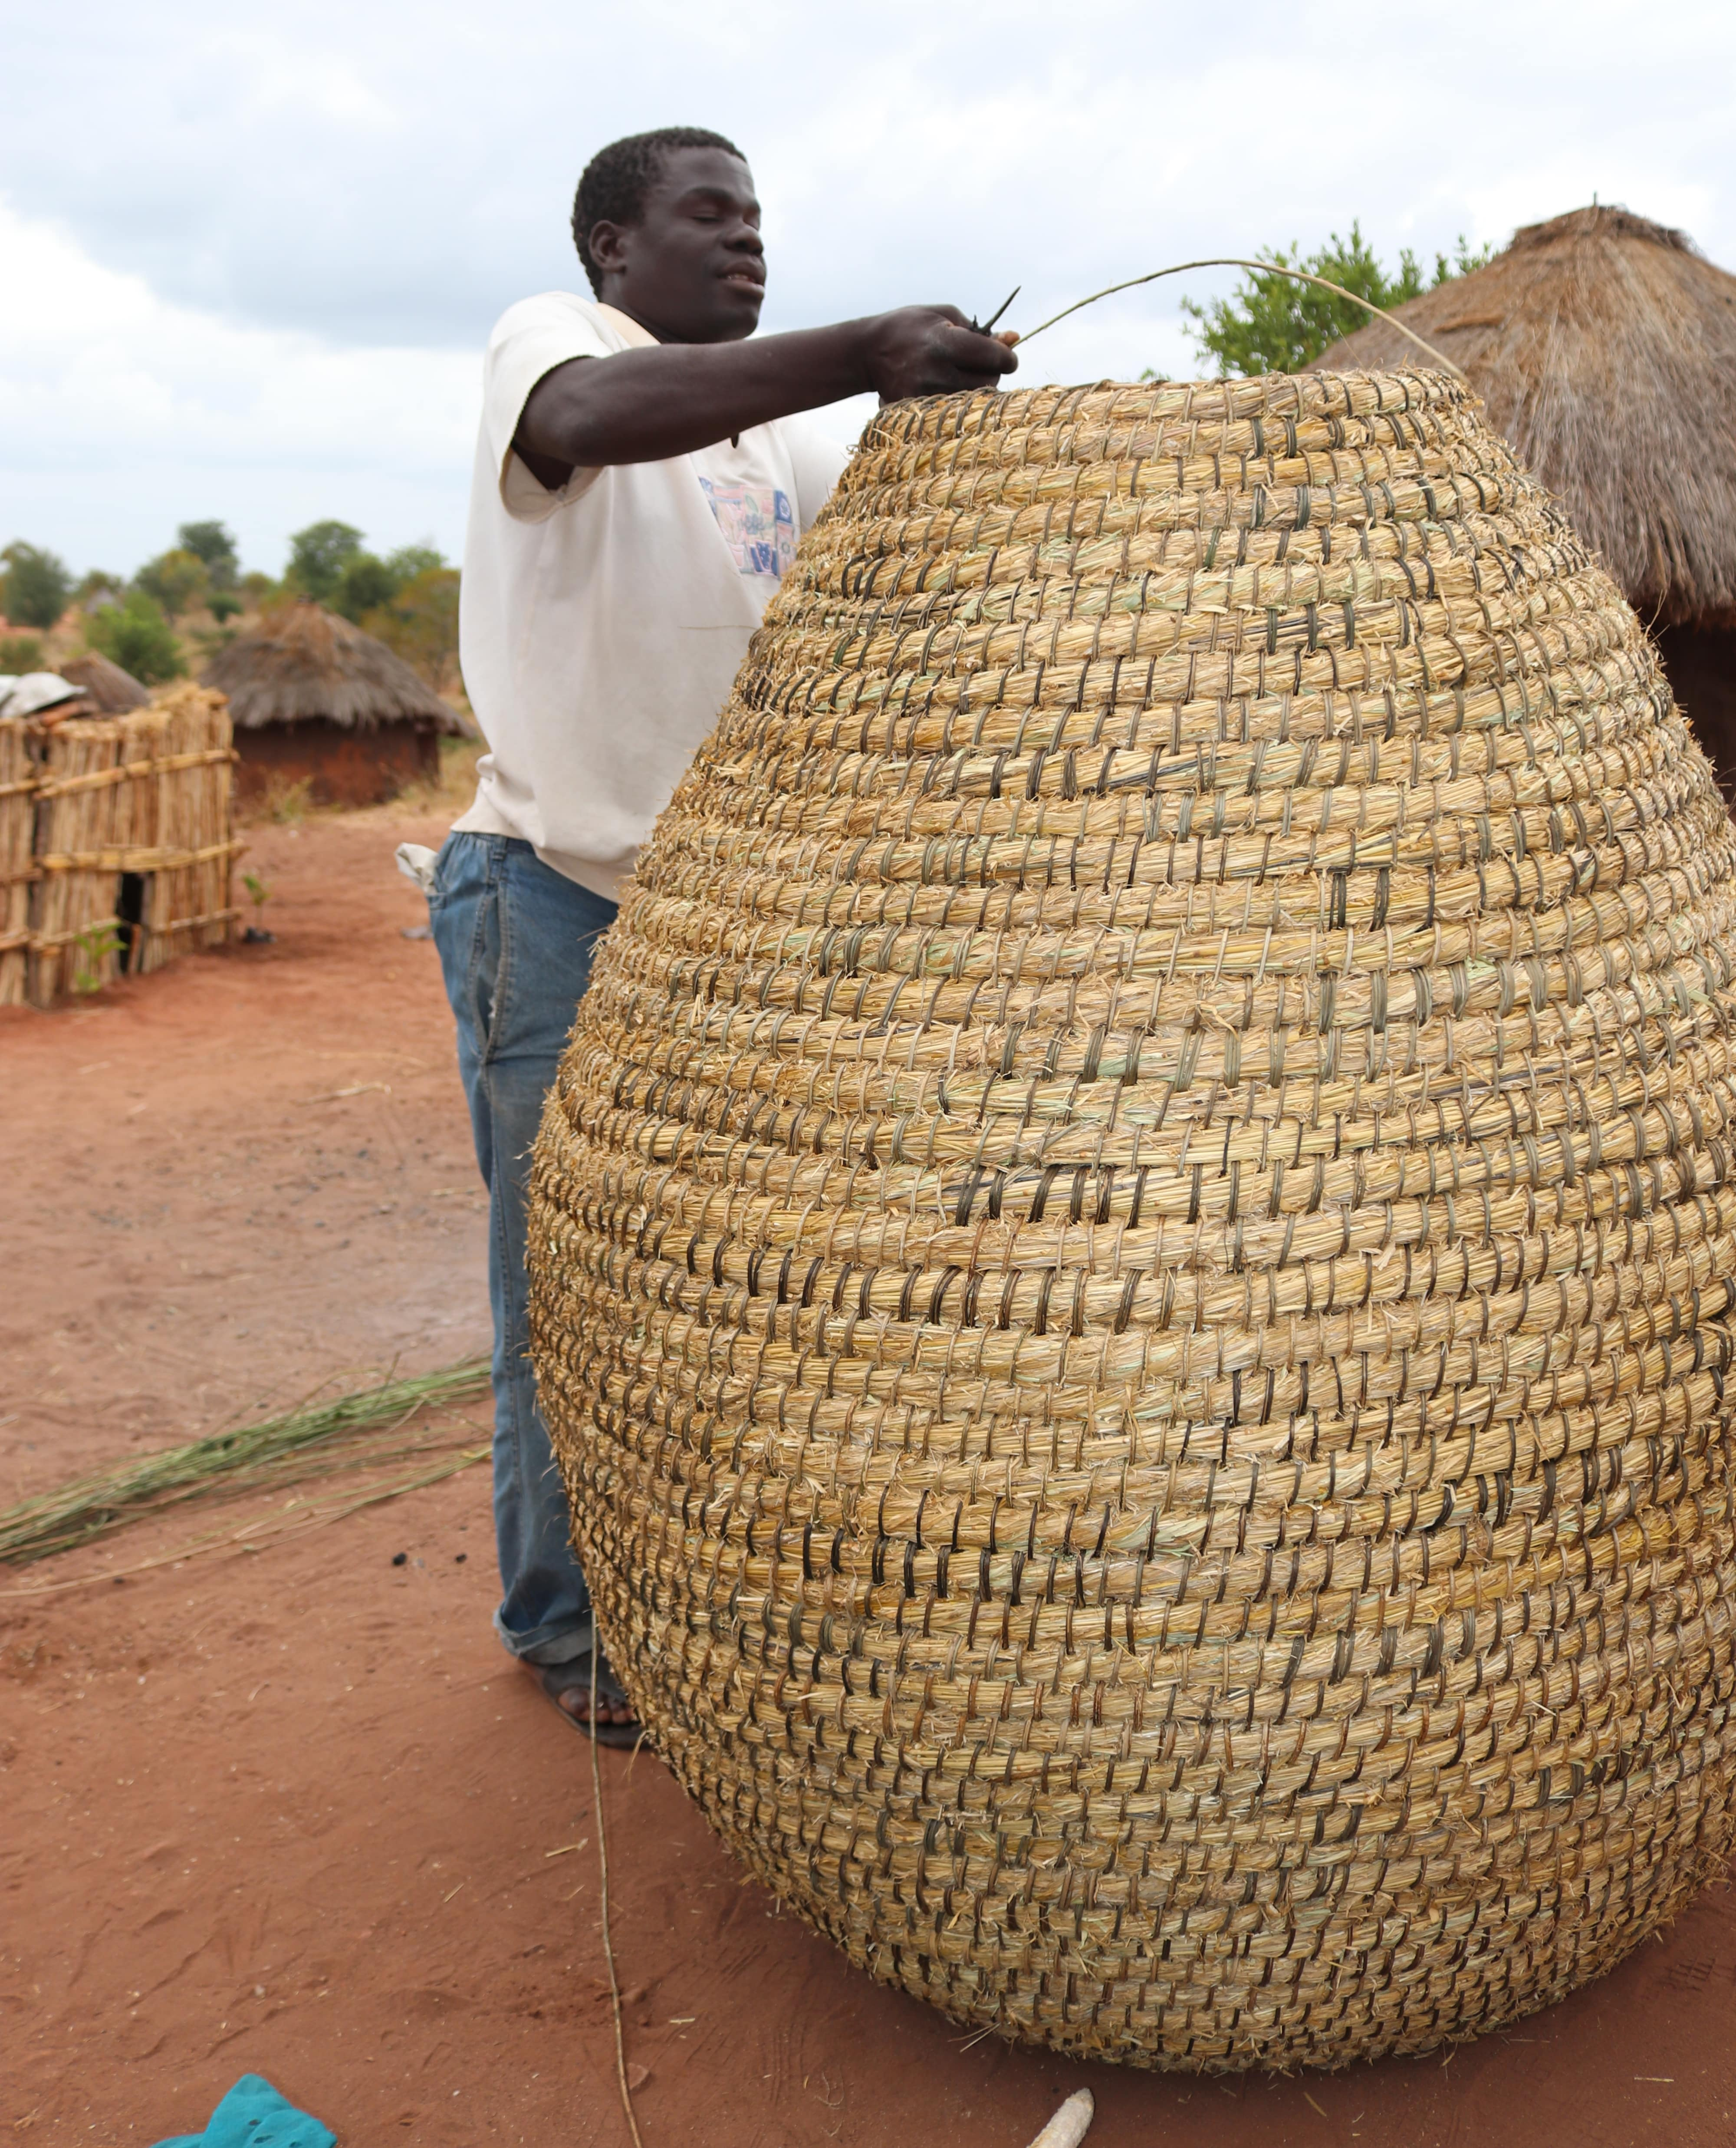 Raimundo weaving the basket for sale